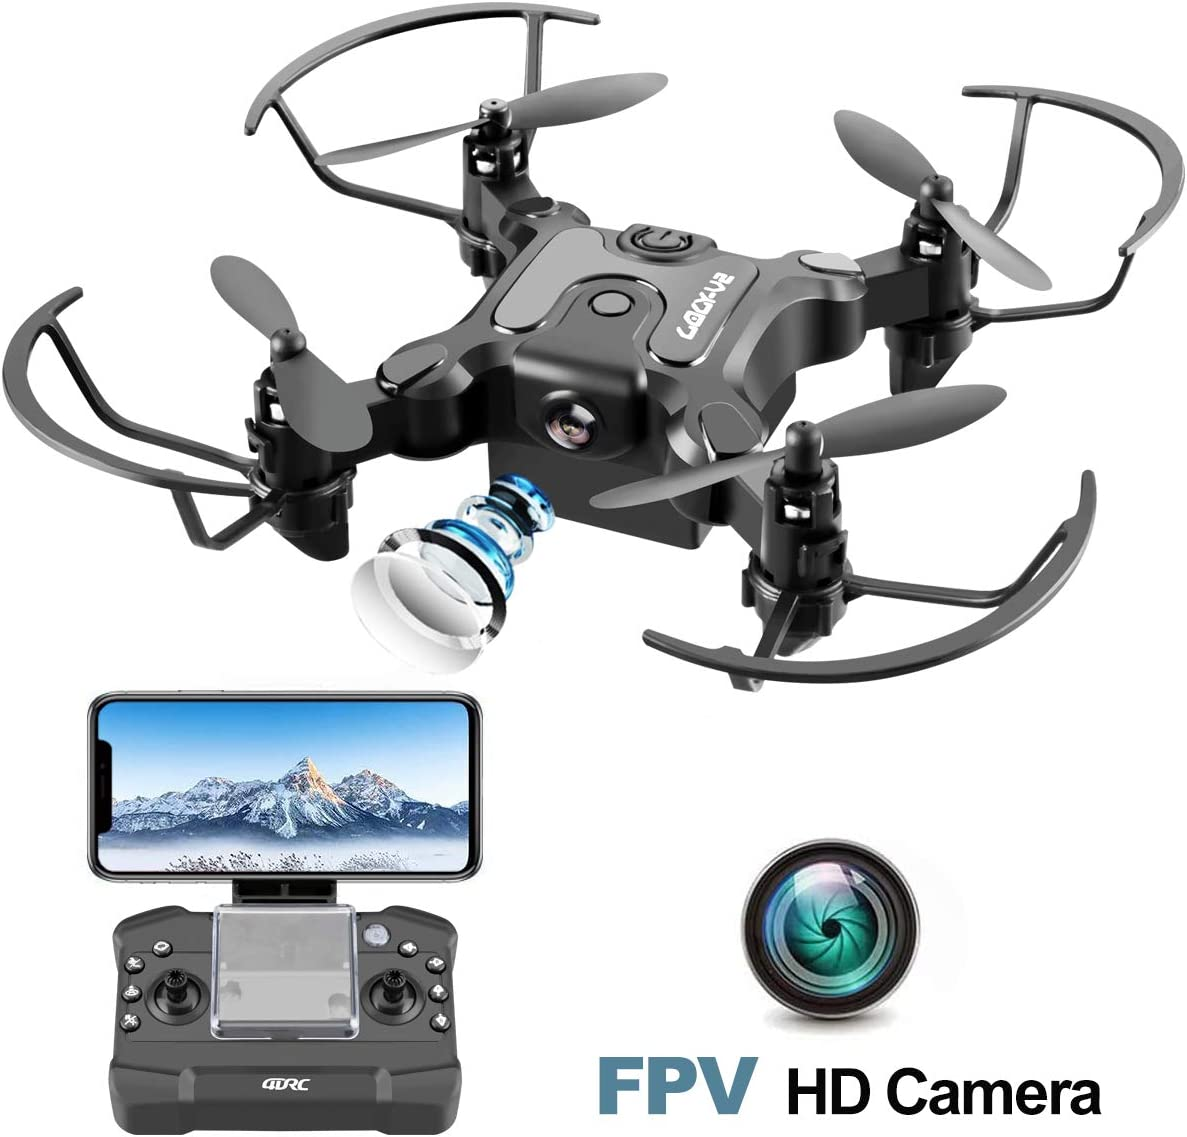 4DRC Mini Drone with 720p Camera for Kids and Adults, Drone Beginners RC Foldable FPV Live Video Quadcopter,App Control,3D Flips and Headless Mode,One Key Return,Altitude Hold,3 Modular Battery